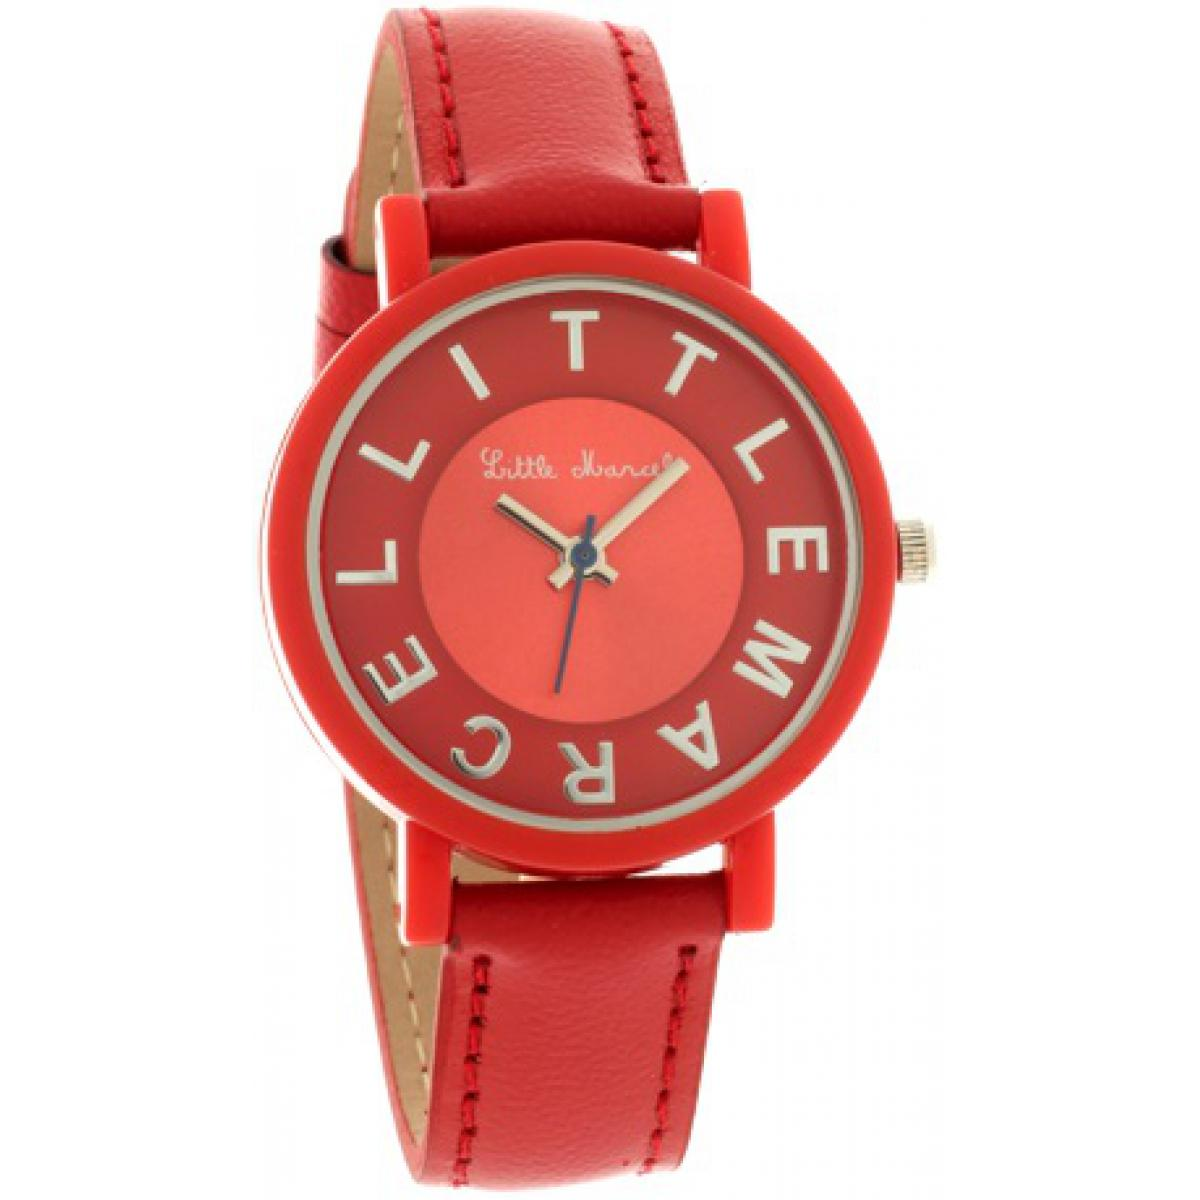 Montre Little marcel LM49RDC - Montre Cuir Rouge Femme